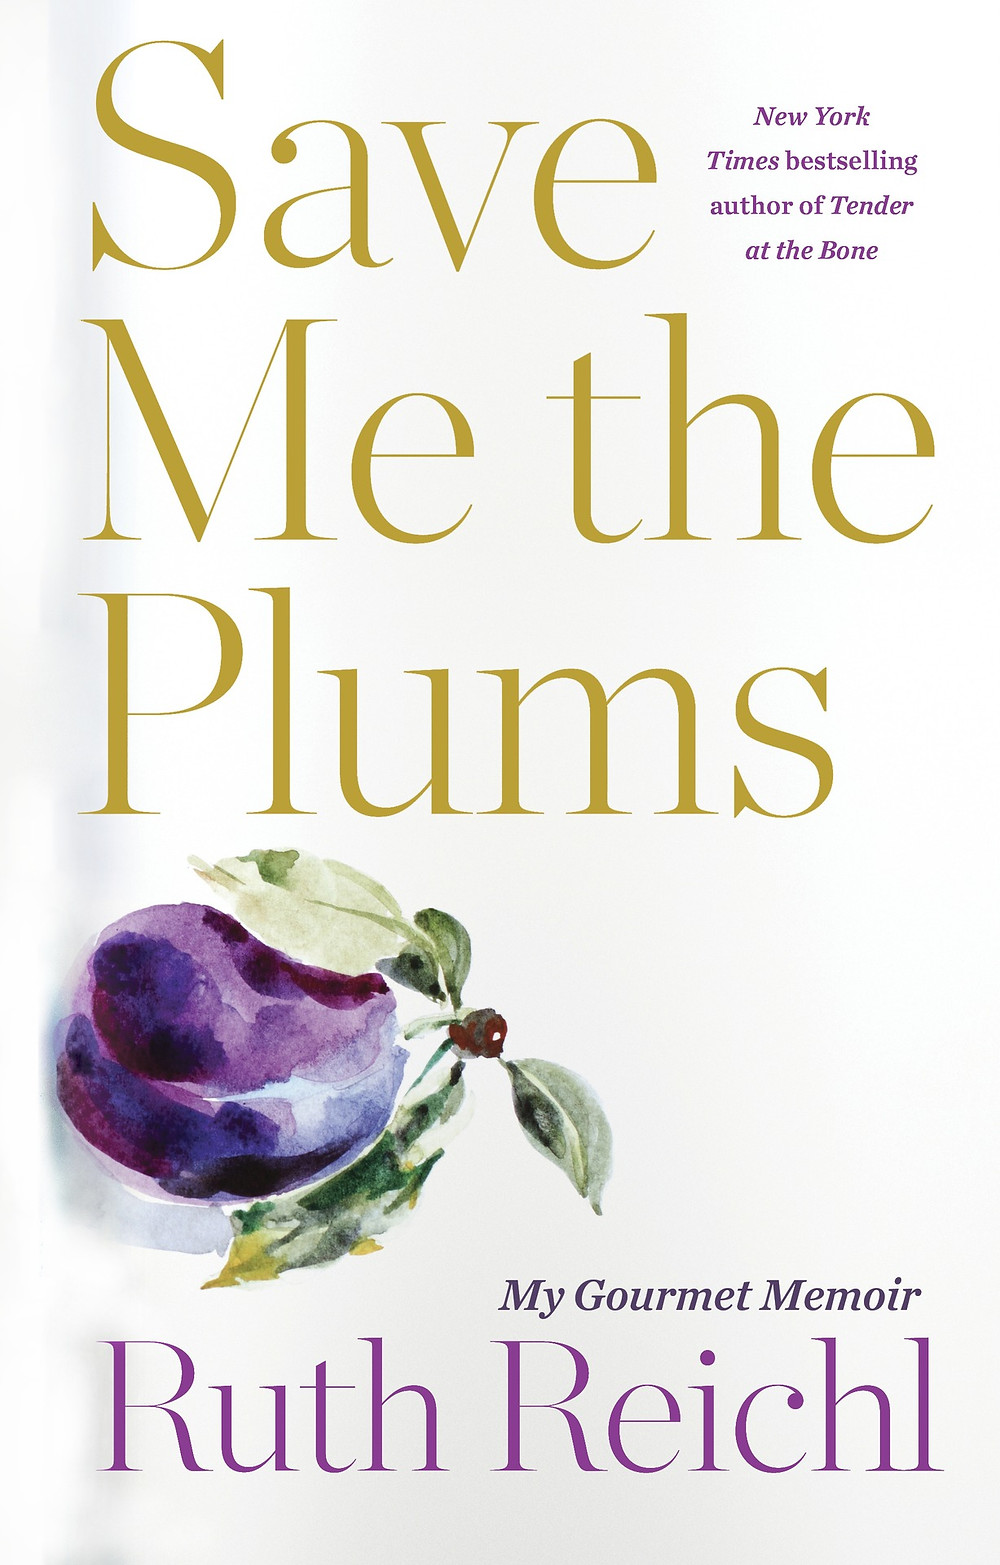 Save Me the Plums: My Gourmet Memoir by Ruth Reichl thebookslut book reviews Publisher: Random House Published Date: April 02, 2019 Pages: 288 Dimensions: 6.3 X 1.0 X 9.3 inches | 1.1 pounds Language: English Type: Hardcover ISBN: 9781400069996 Ruth Reichl is the bestselling author of the memoirs Tender at the Bone, Comfort Me with Apples, Garlic and Sapphires, and For You, Mom, Finally; the novel Delicious!; and, most recently, the cookbook My Kitchen Year. She was editor in chief of Gourmet magazine for ten years. Previously she was the restaurant critic for The New York Times and served as the food editor and restaurant critic for the Los Angeles Times. She has been honored with six James Beard Awards for her journalism, magazine feature writing, and criticism. She lives in upstate New York with her husband and two cats.